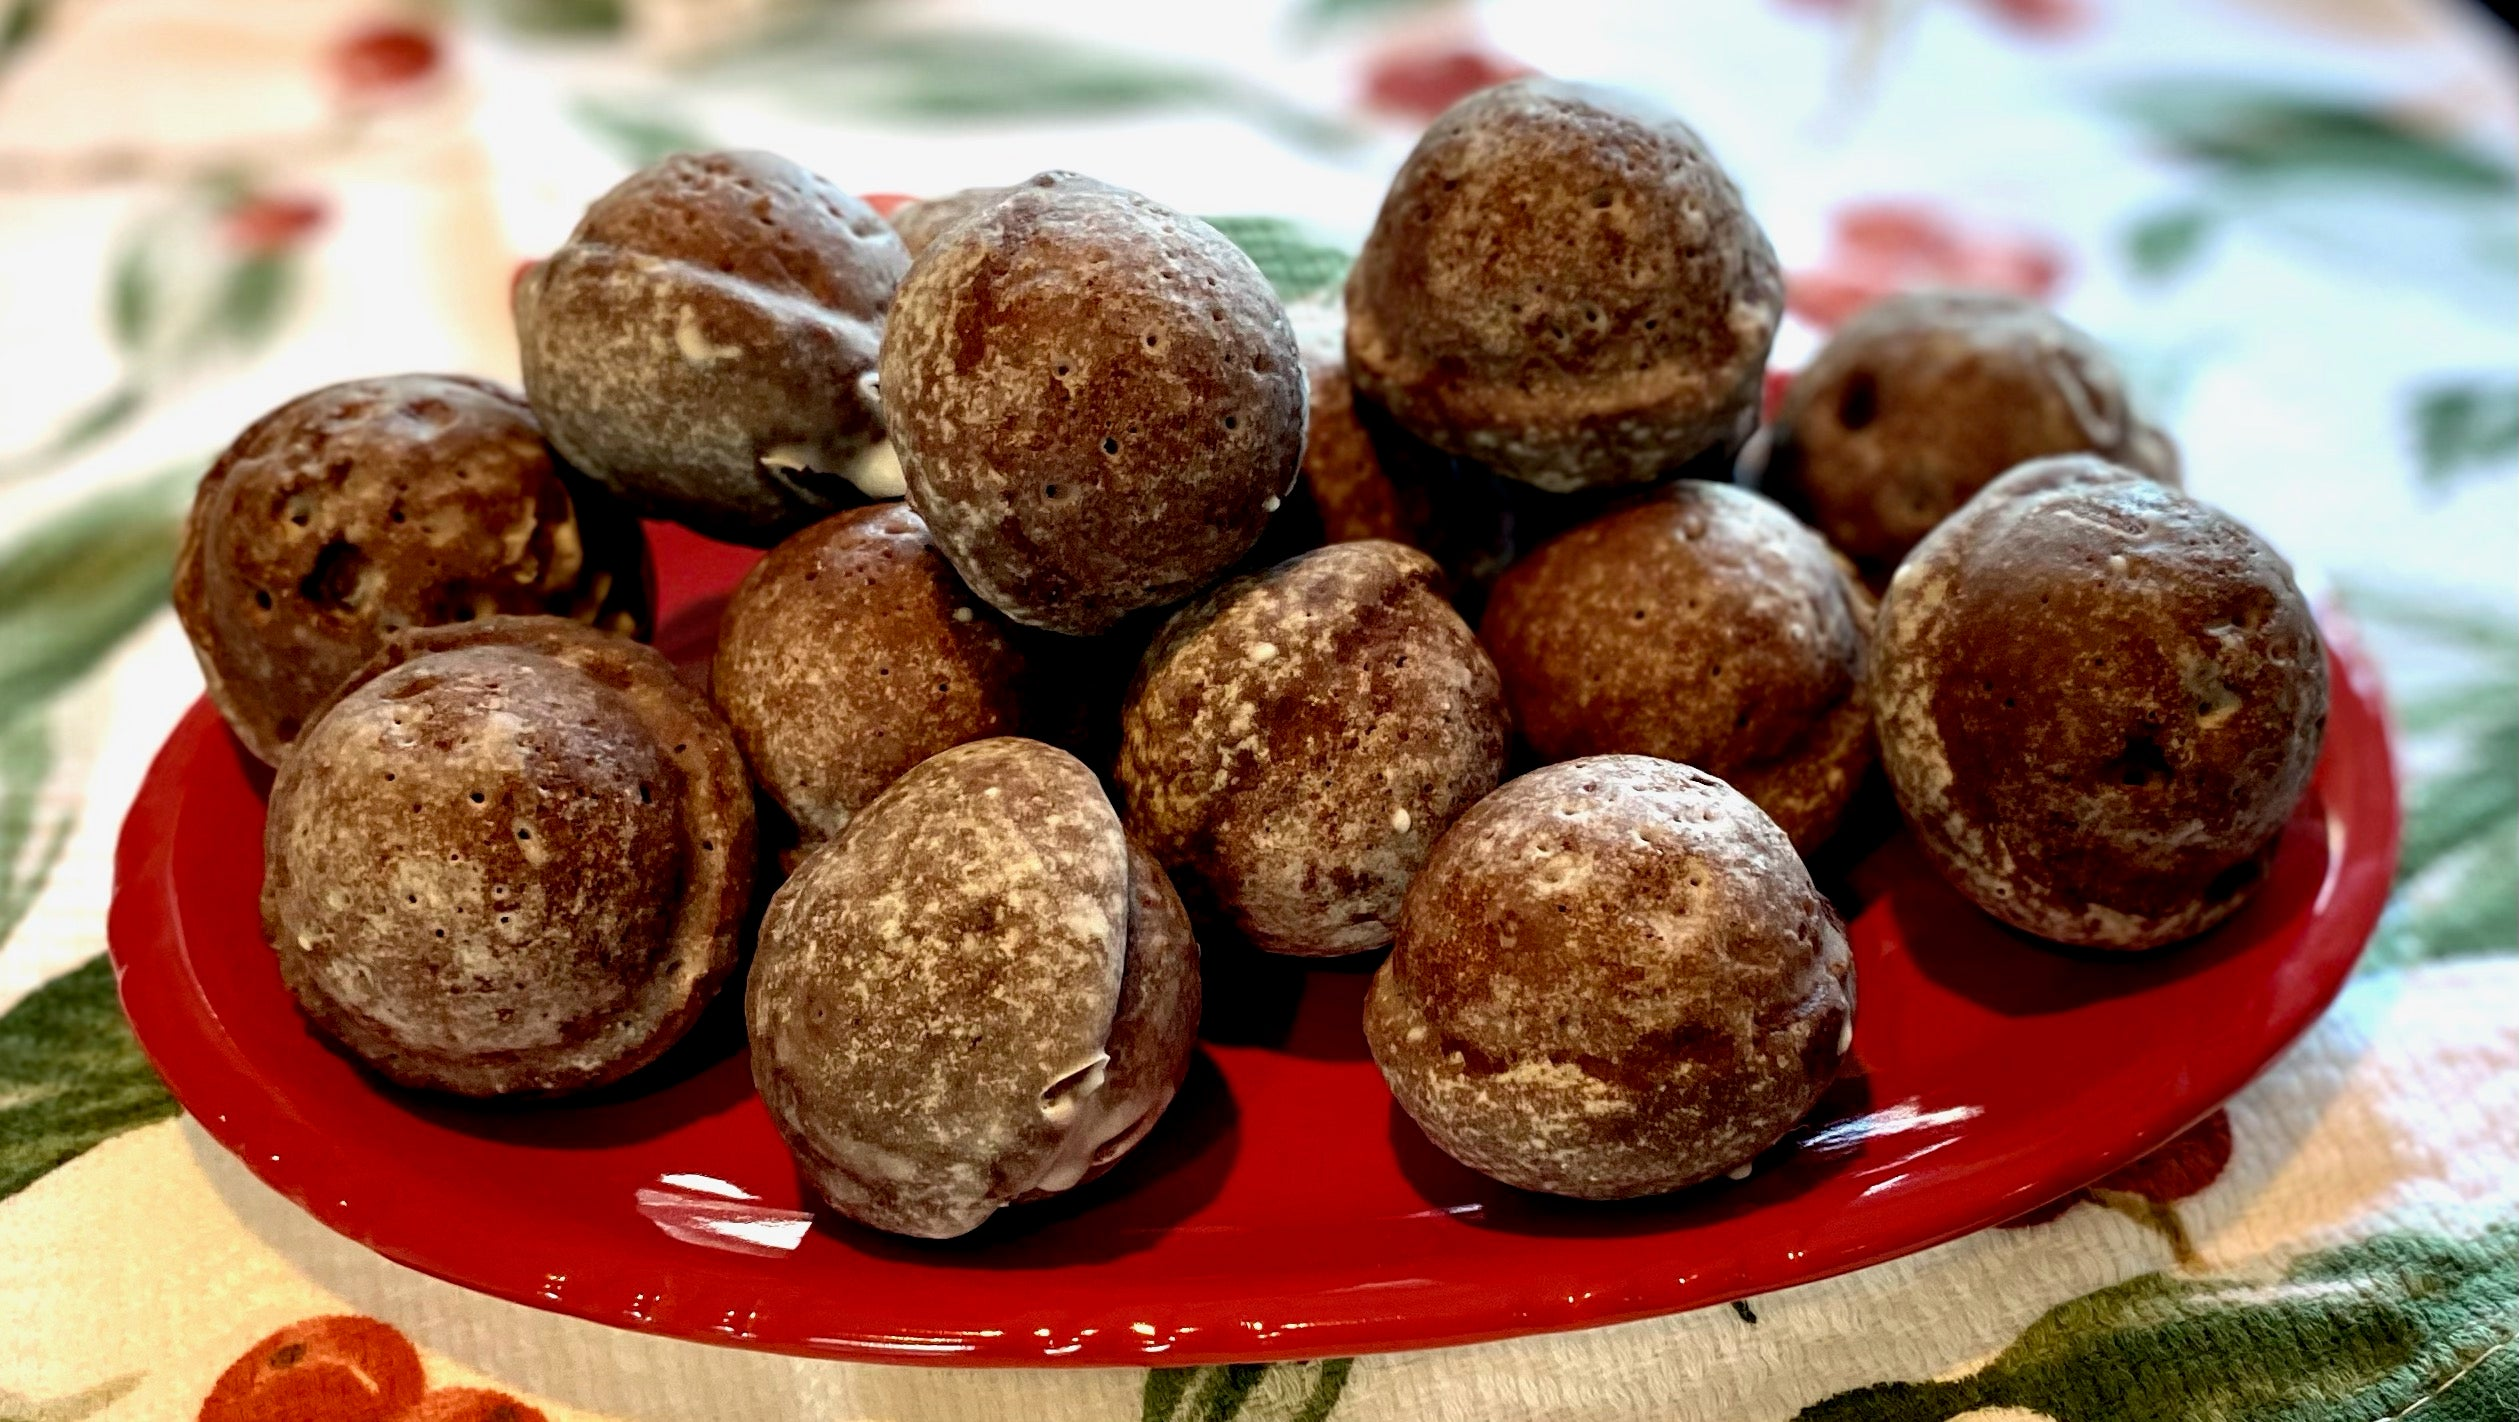 Glazed Chocolate Doughnut Holes